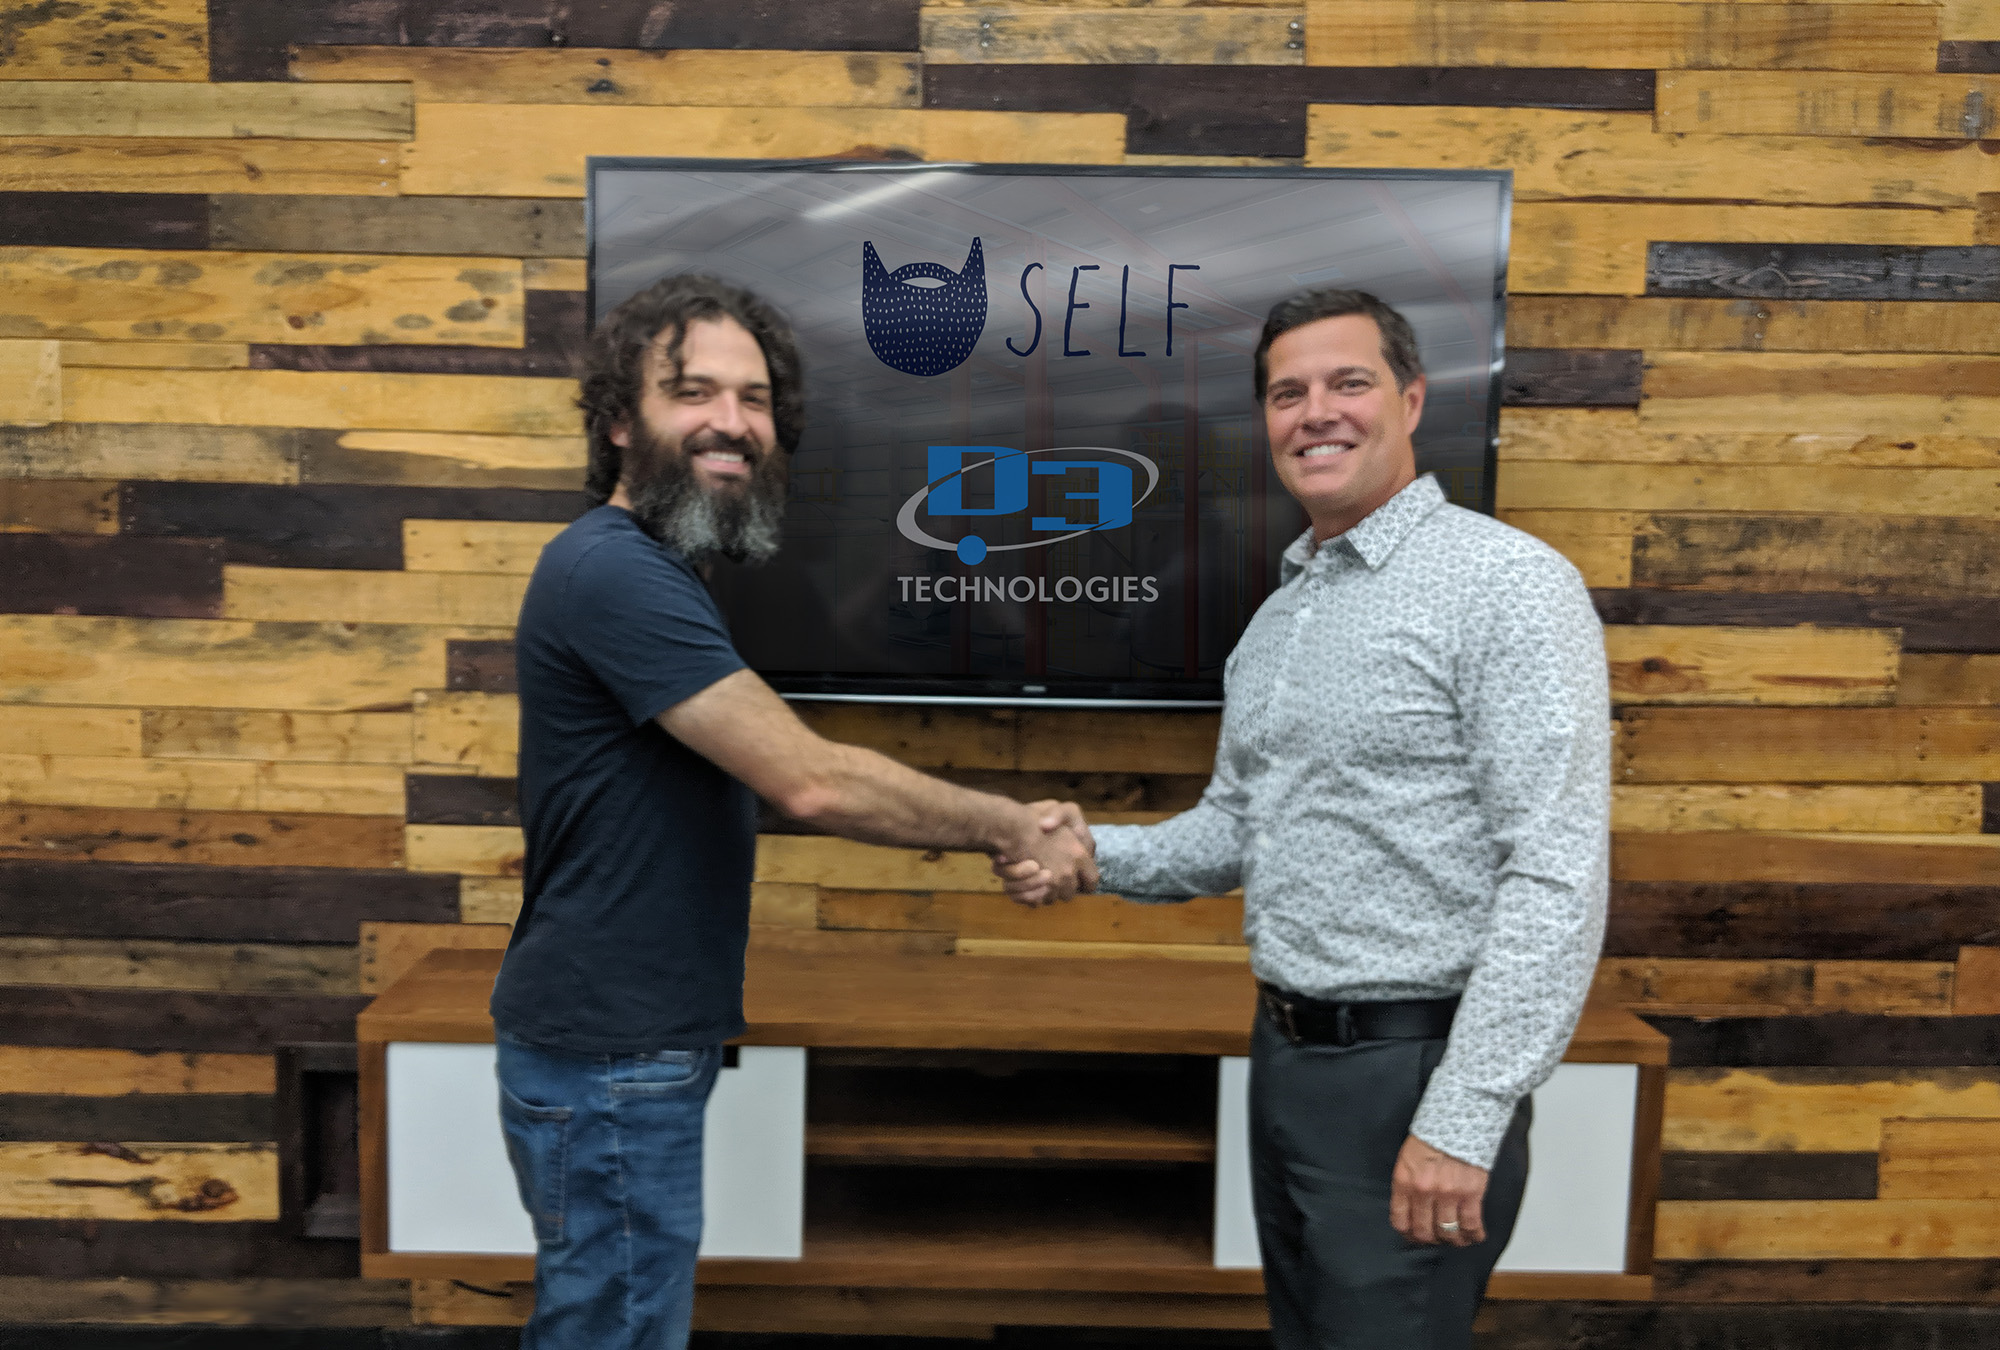 D3 Technologies And Self Interactive Will Work Together To